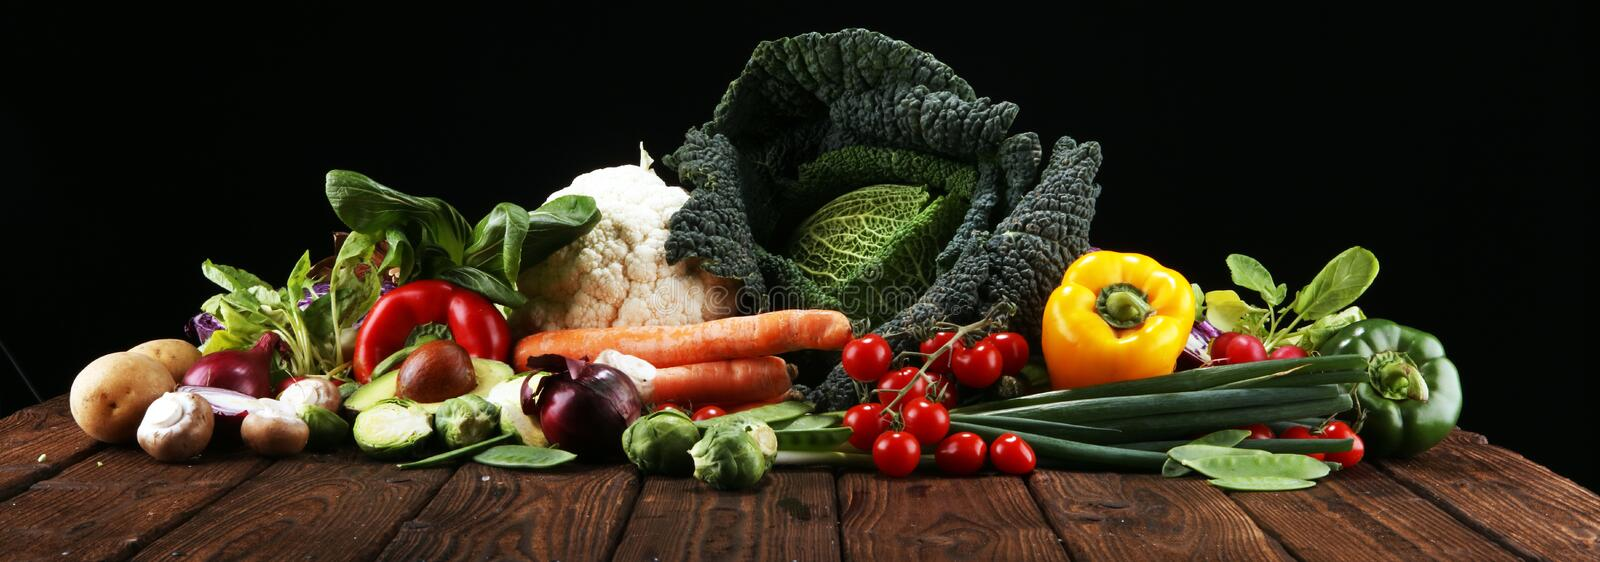 Composition with variety of raw organic vegetables and fruits. Balanced diet.  stock photos